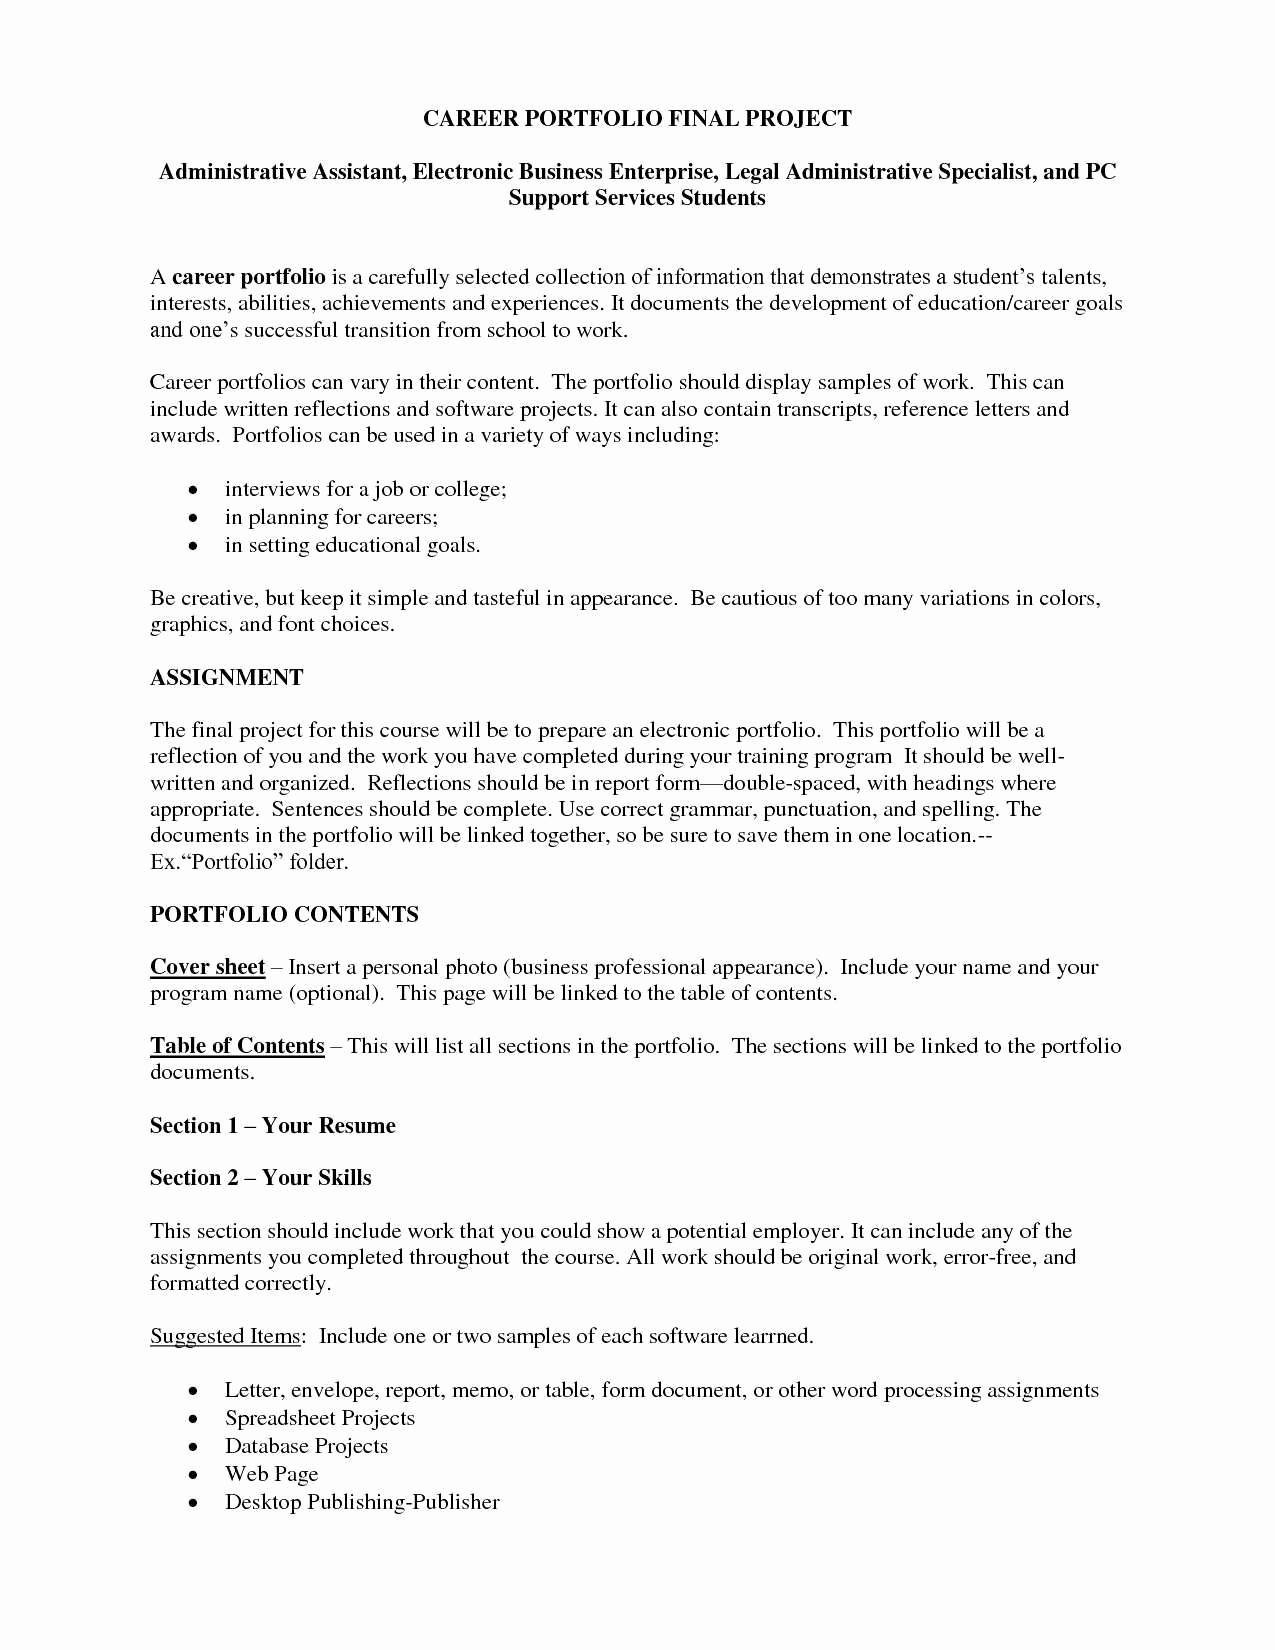 List associate Degree On Resume - 21 How to List associate Degree Resume